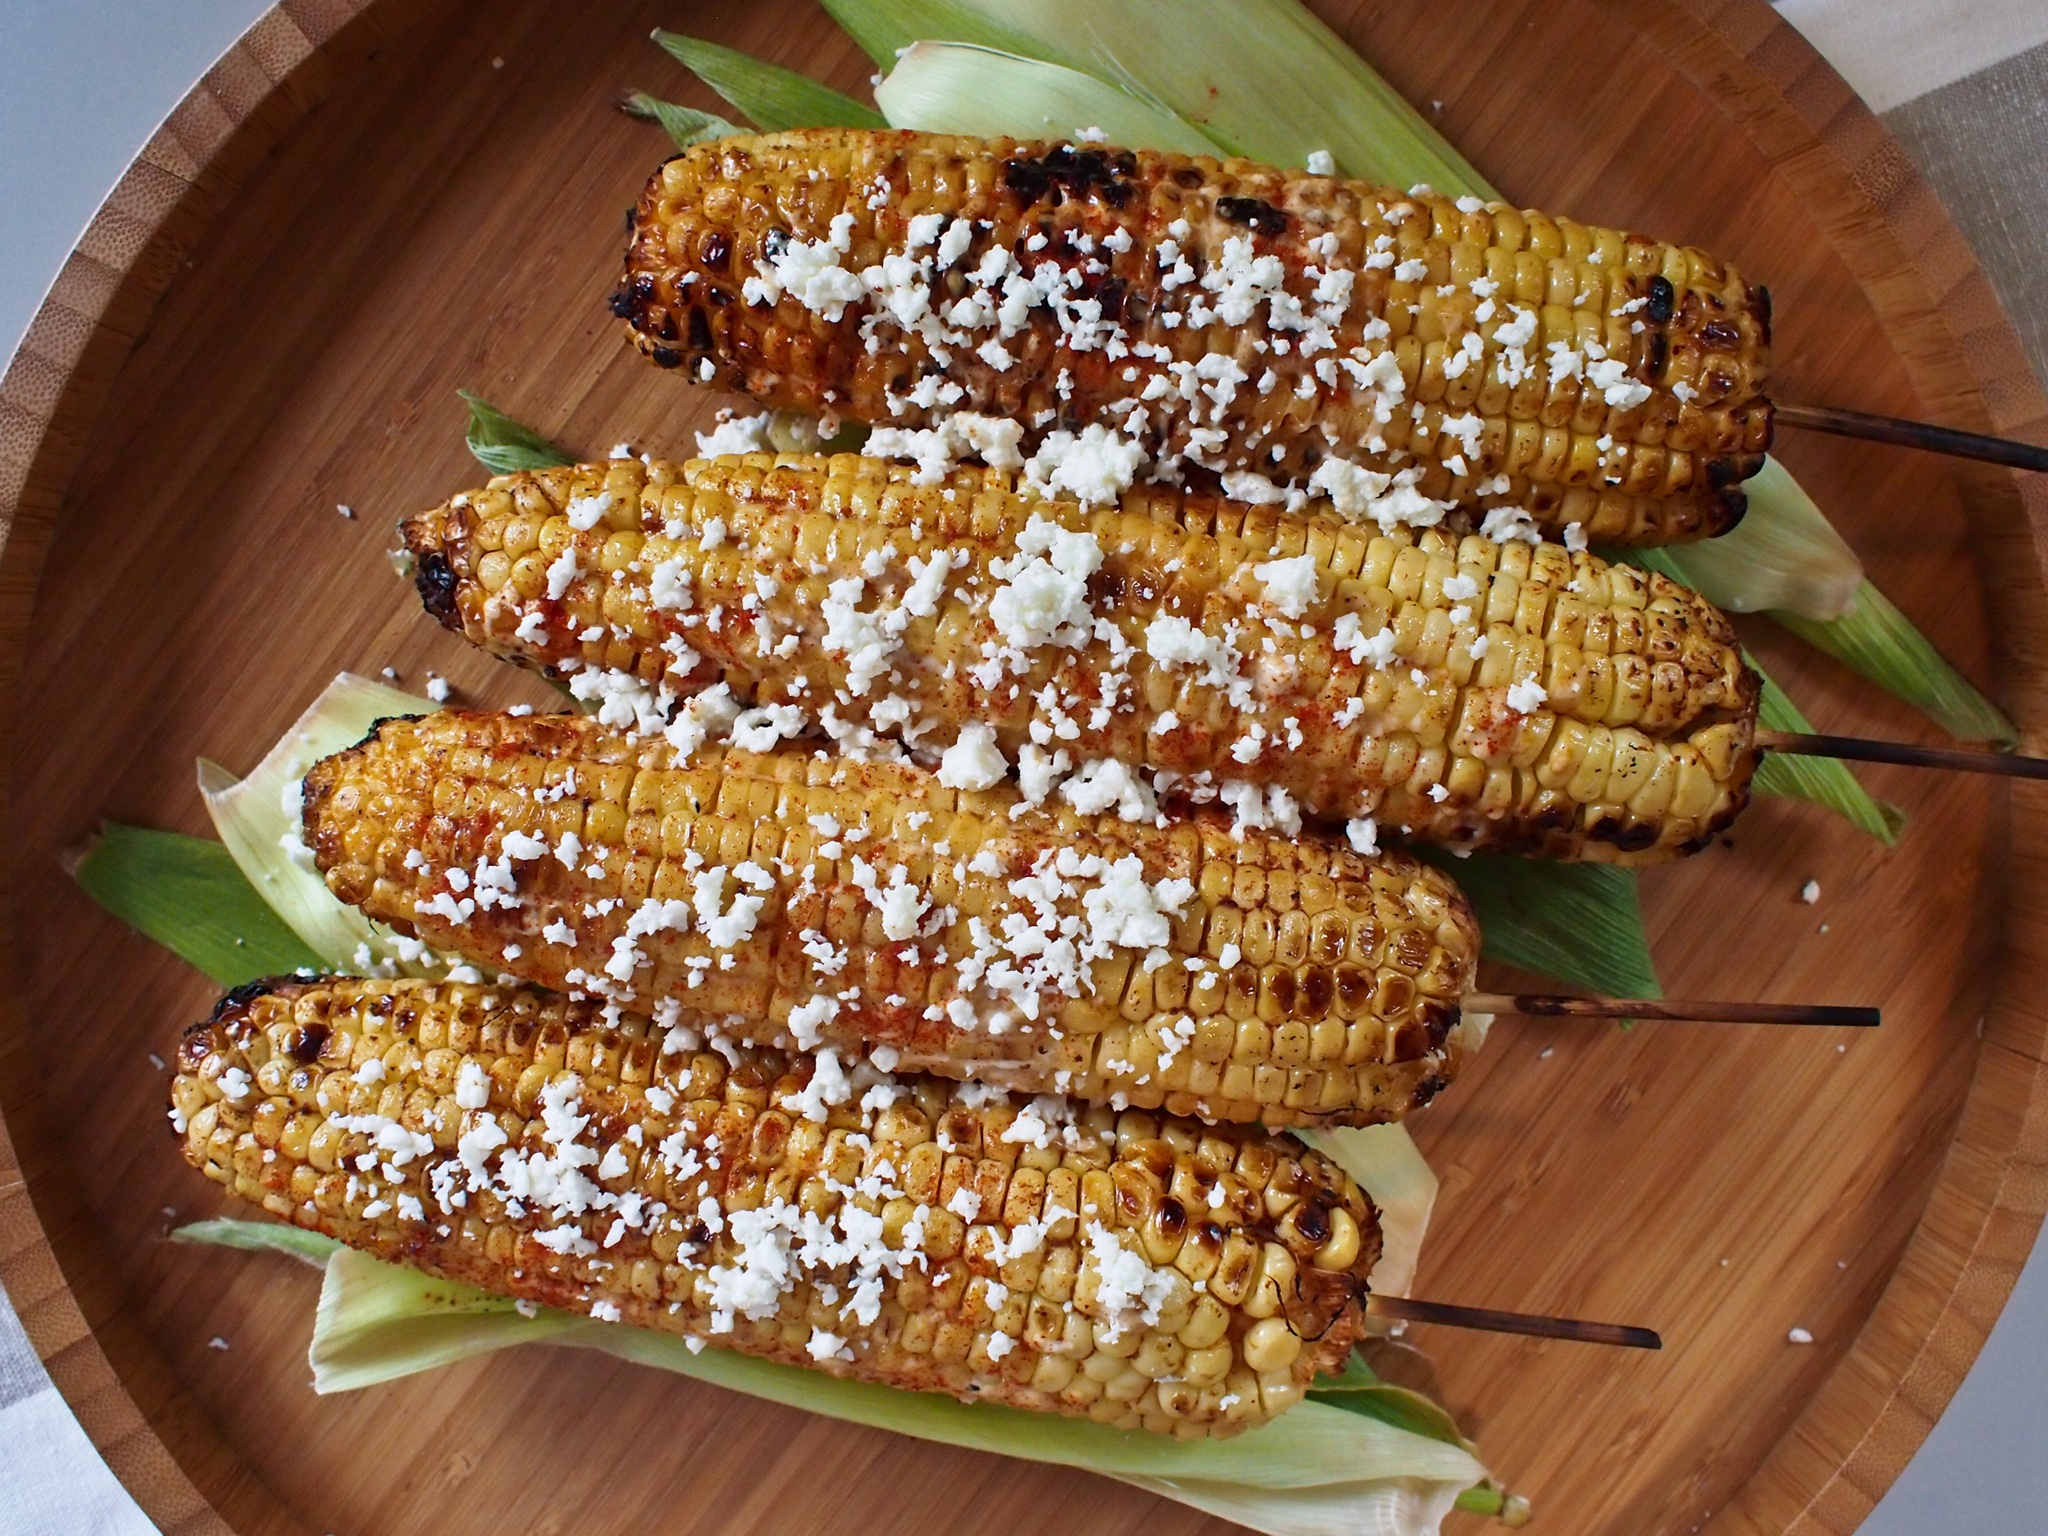 Original_Kristin-Guy-grilled-mexican-corn-beauty-2_s4x3